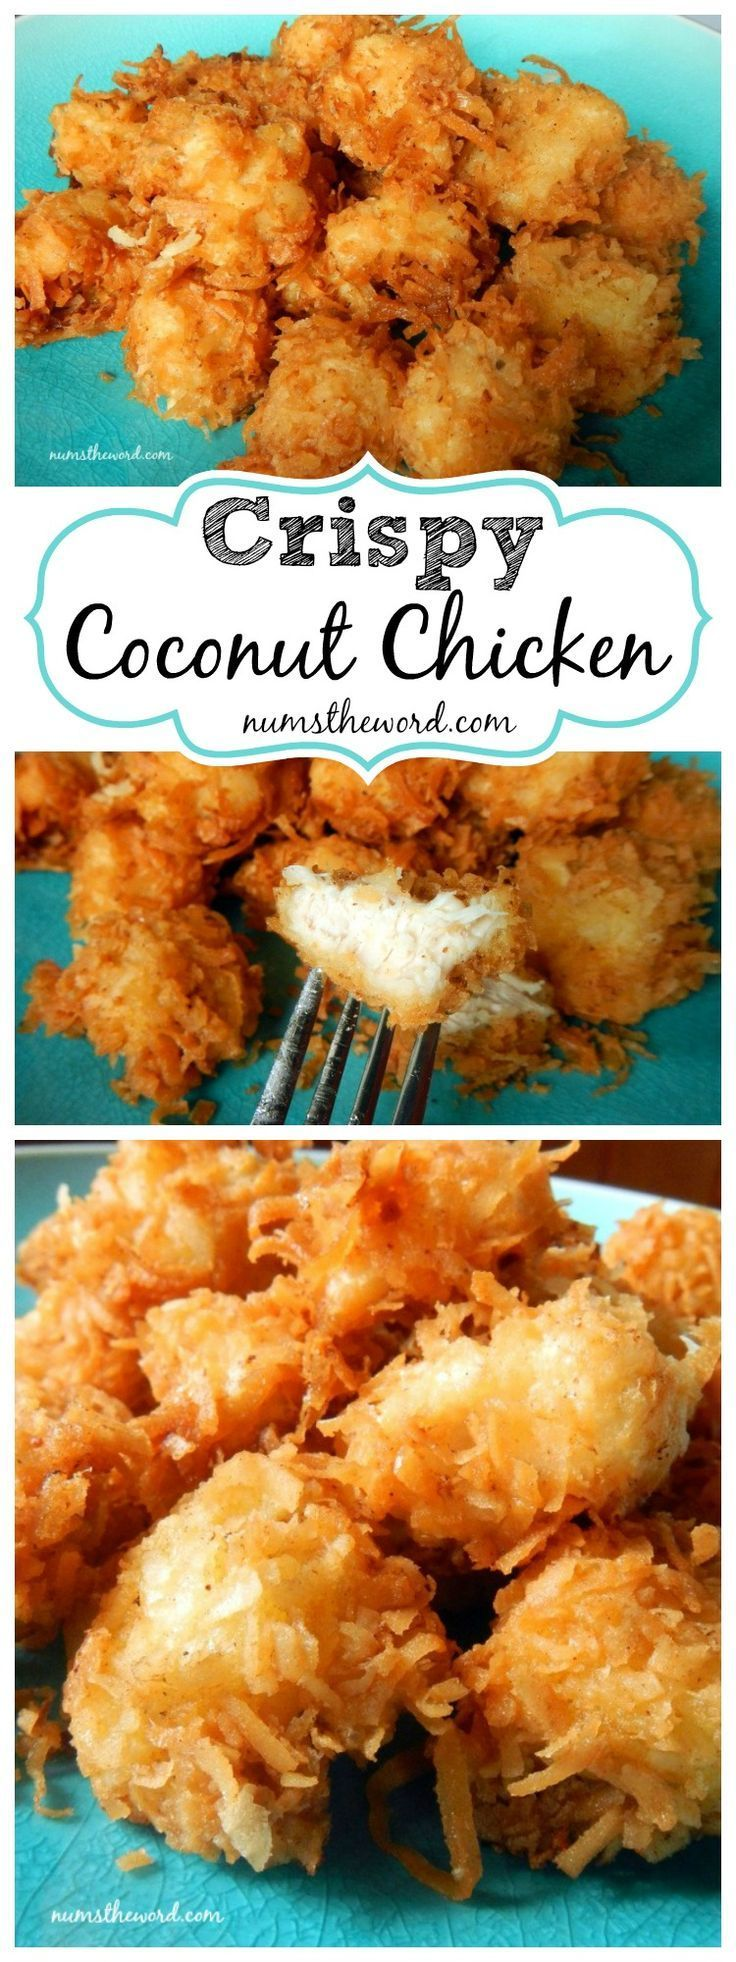 This simple 30 minute dish is packed with flavor. Coconut chicken is now my new…